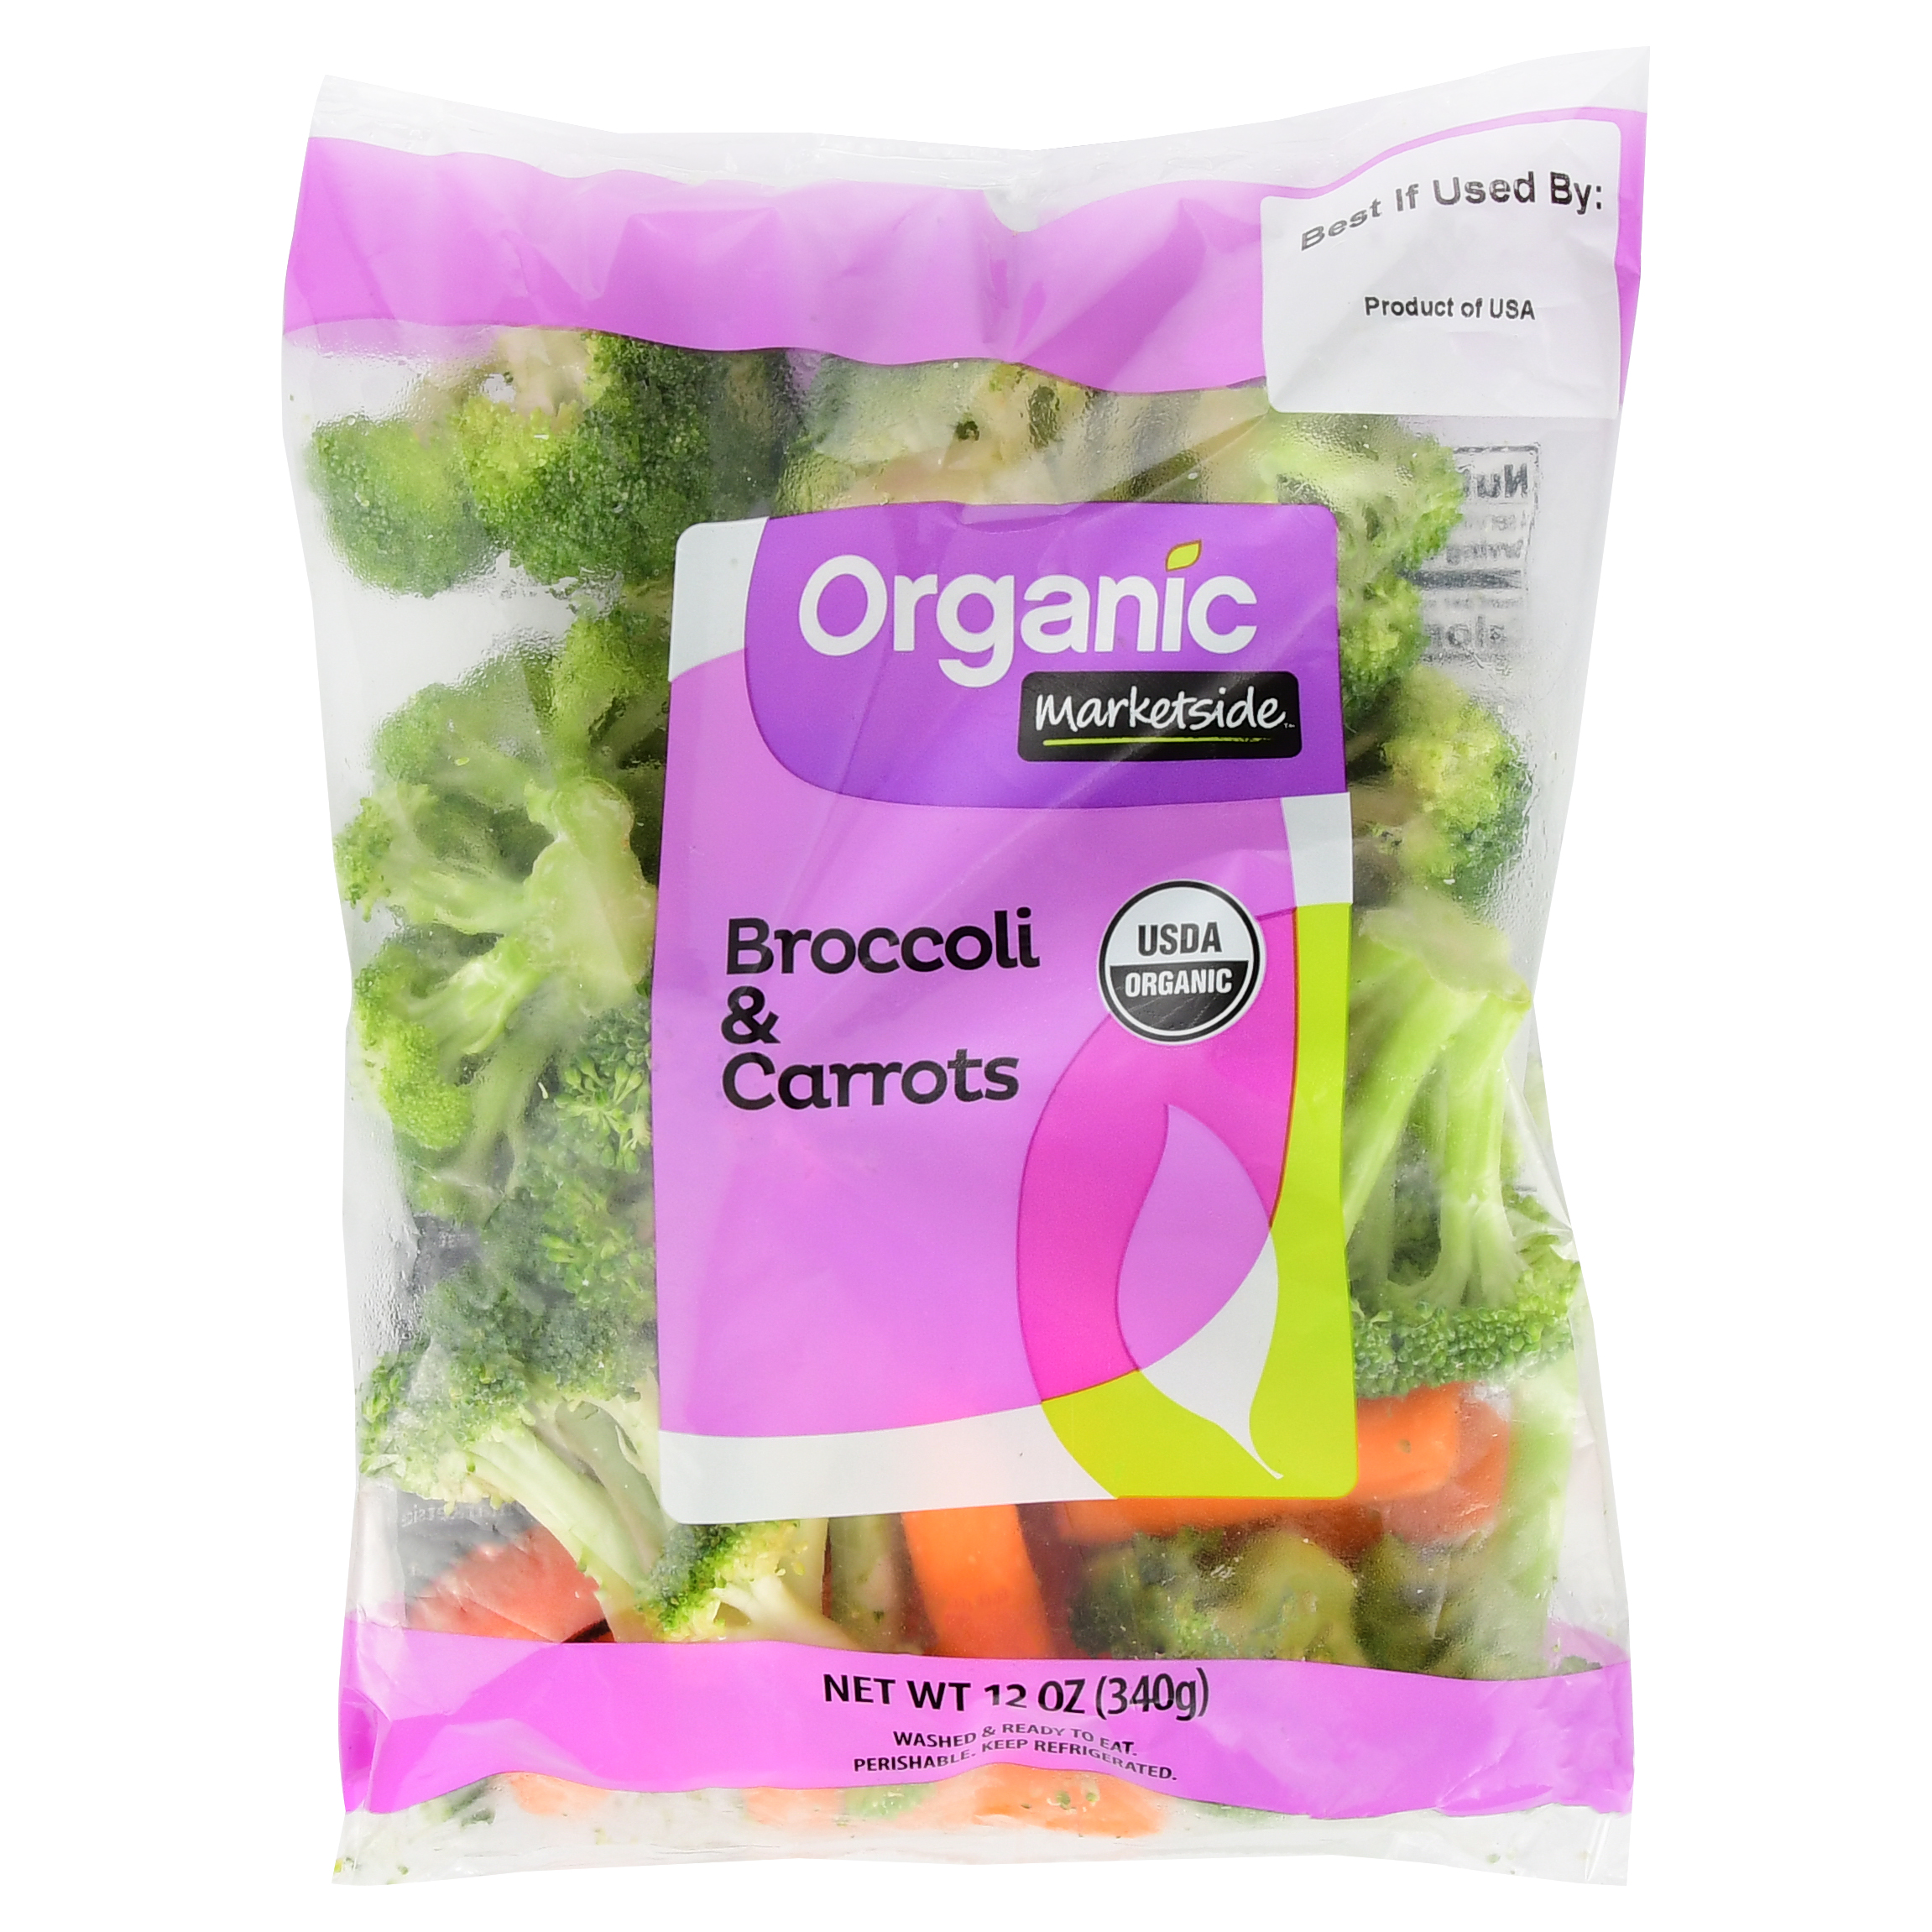 Marketside Organic Broccoli & Carrots, 12 oz